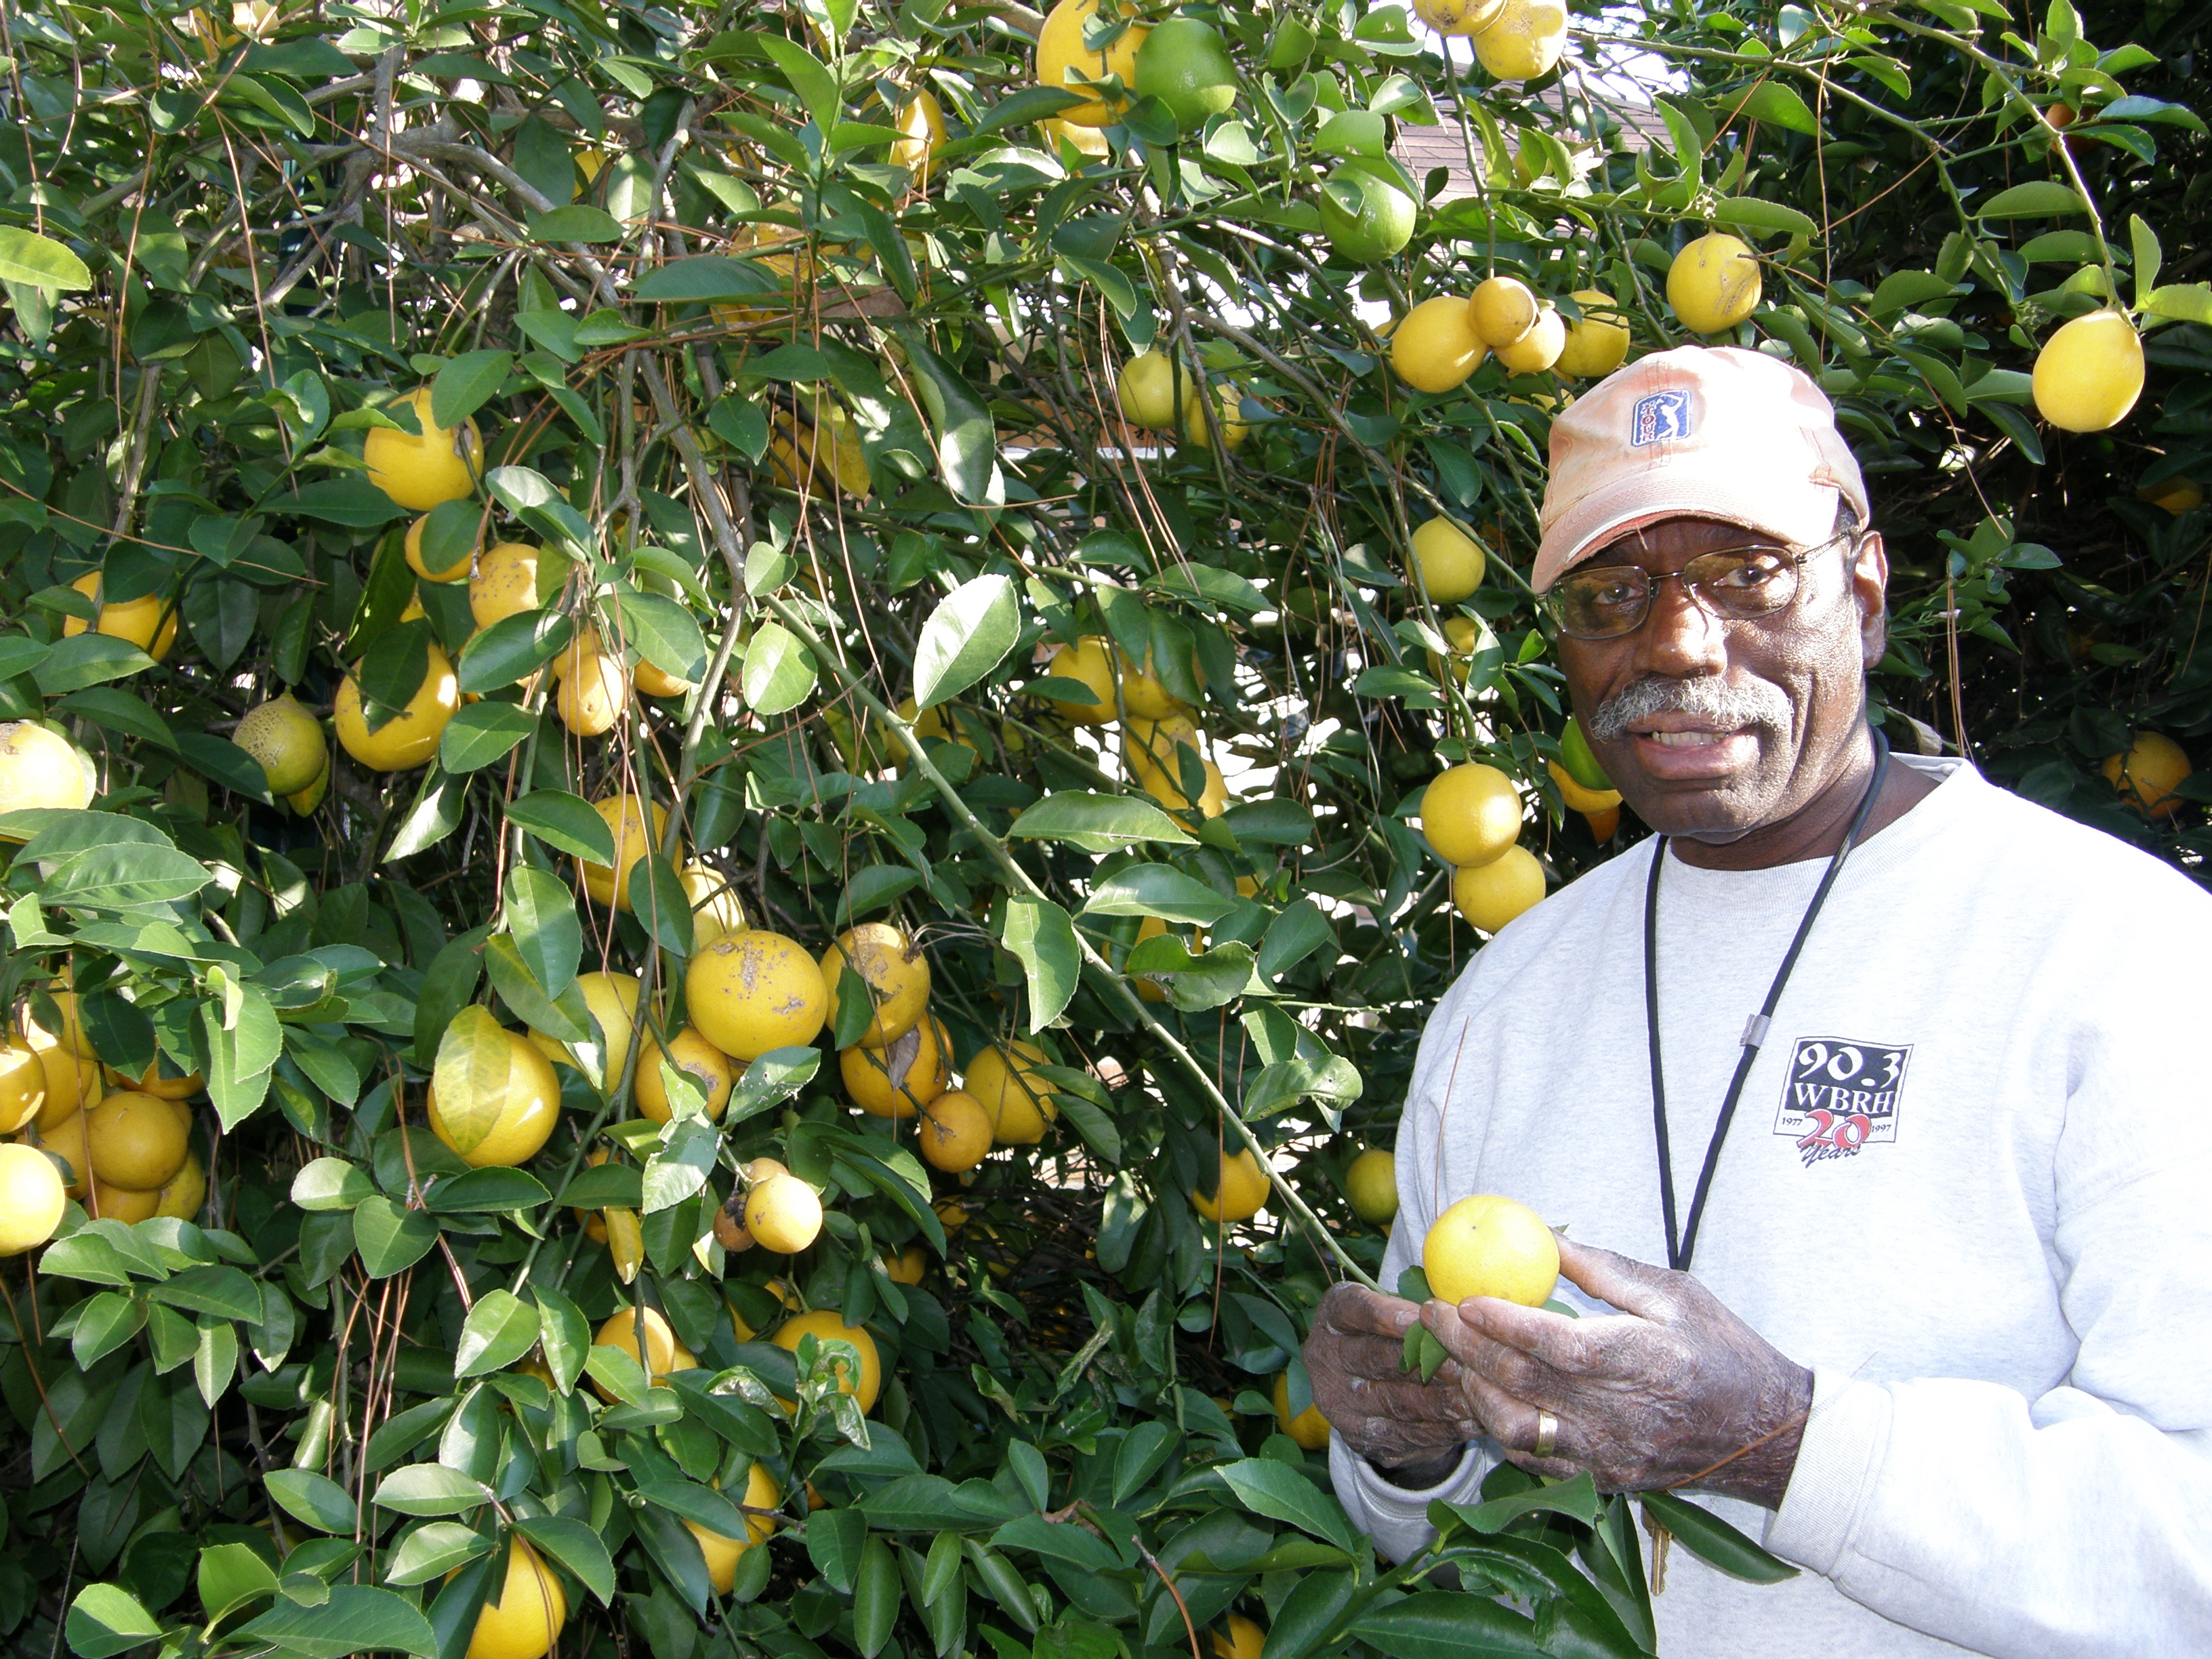 Retired District Court Jude Curtis Calloway with Meyer lemon Tree